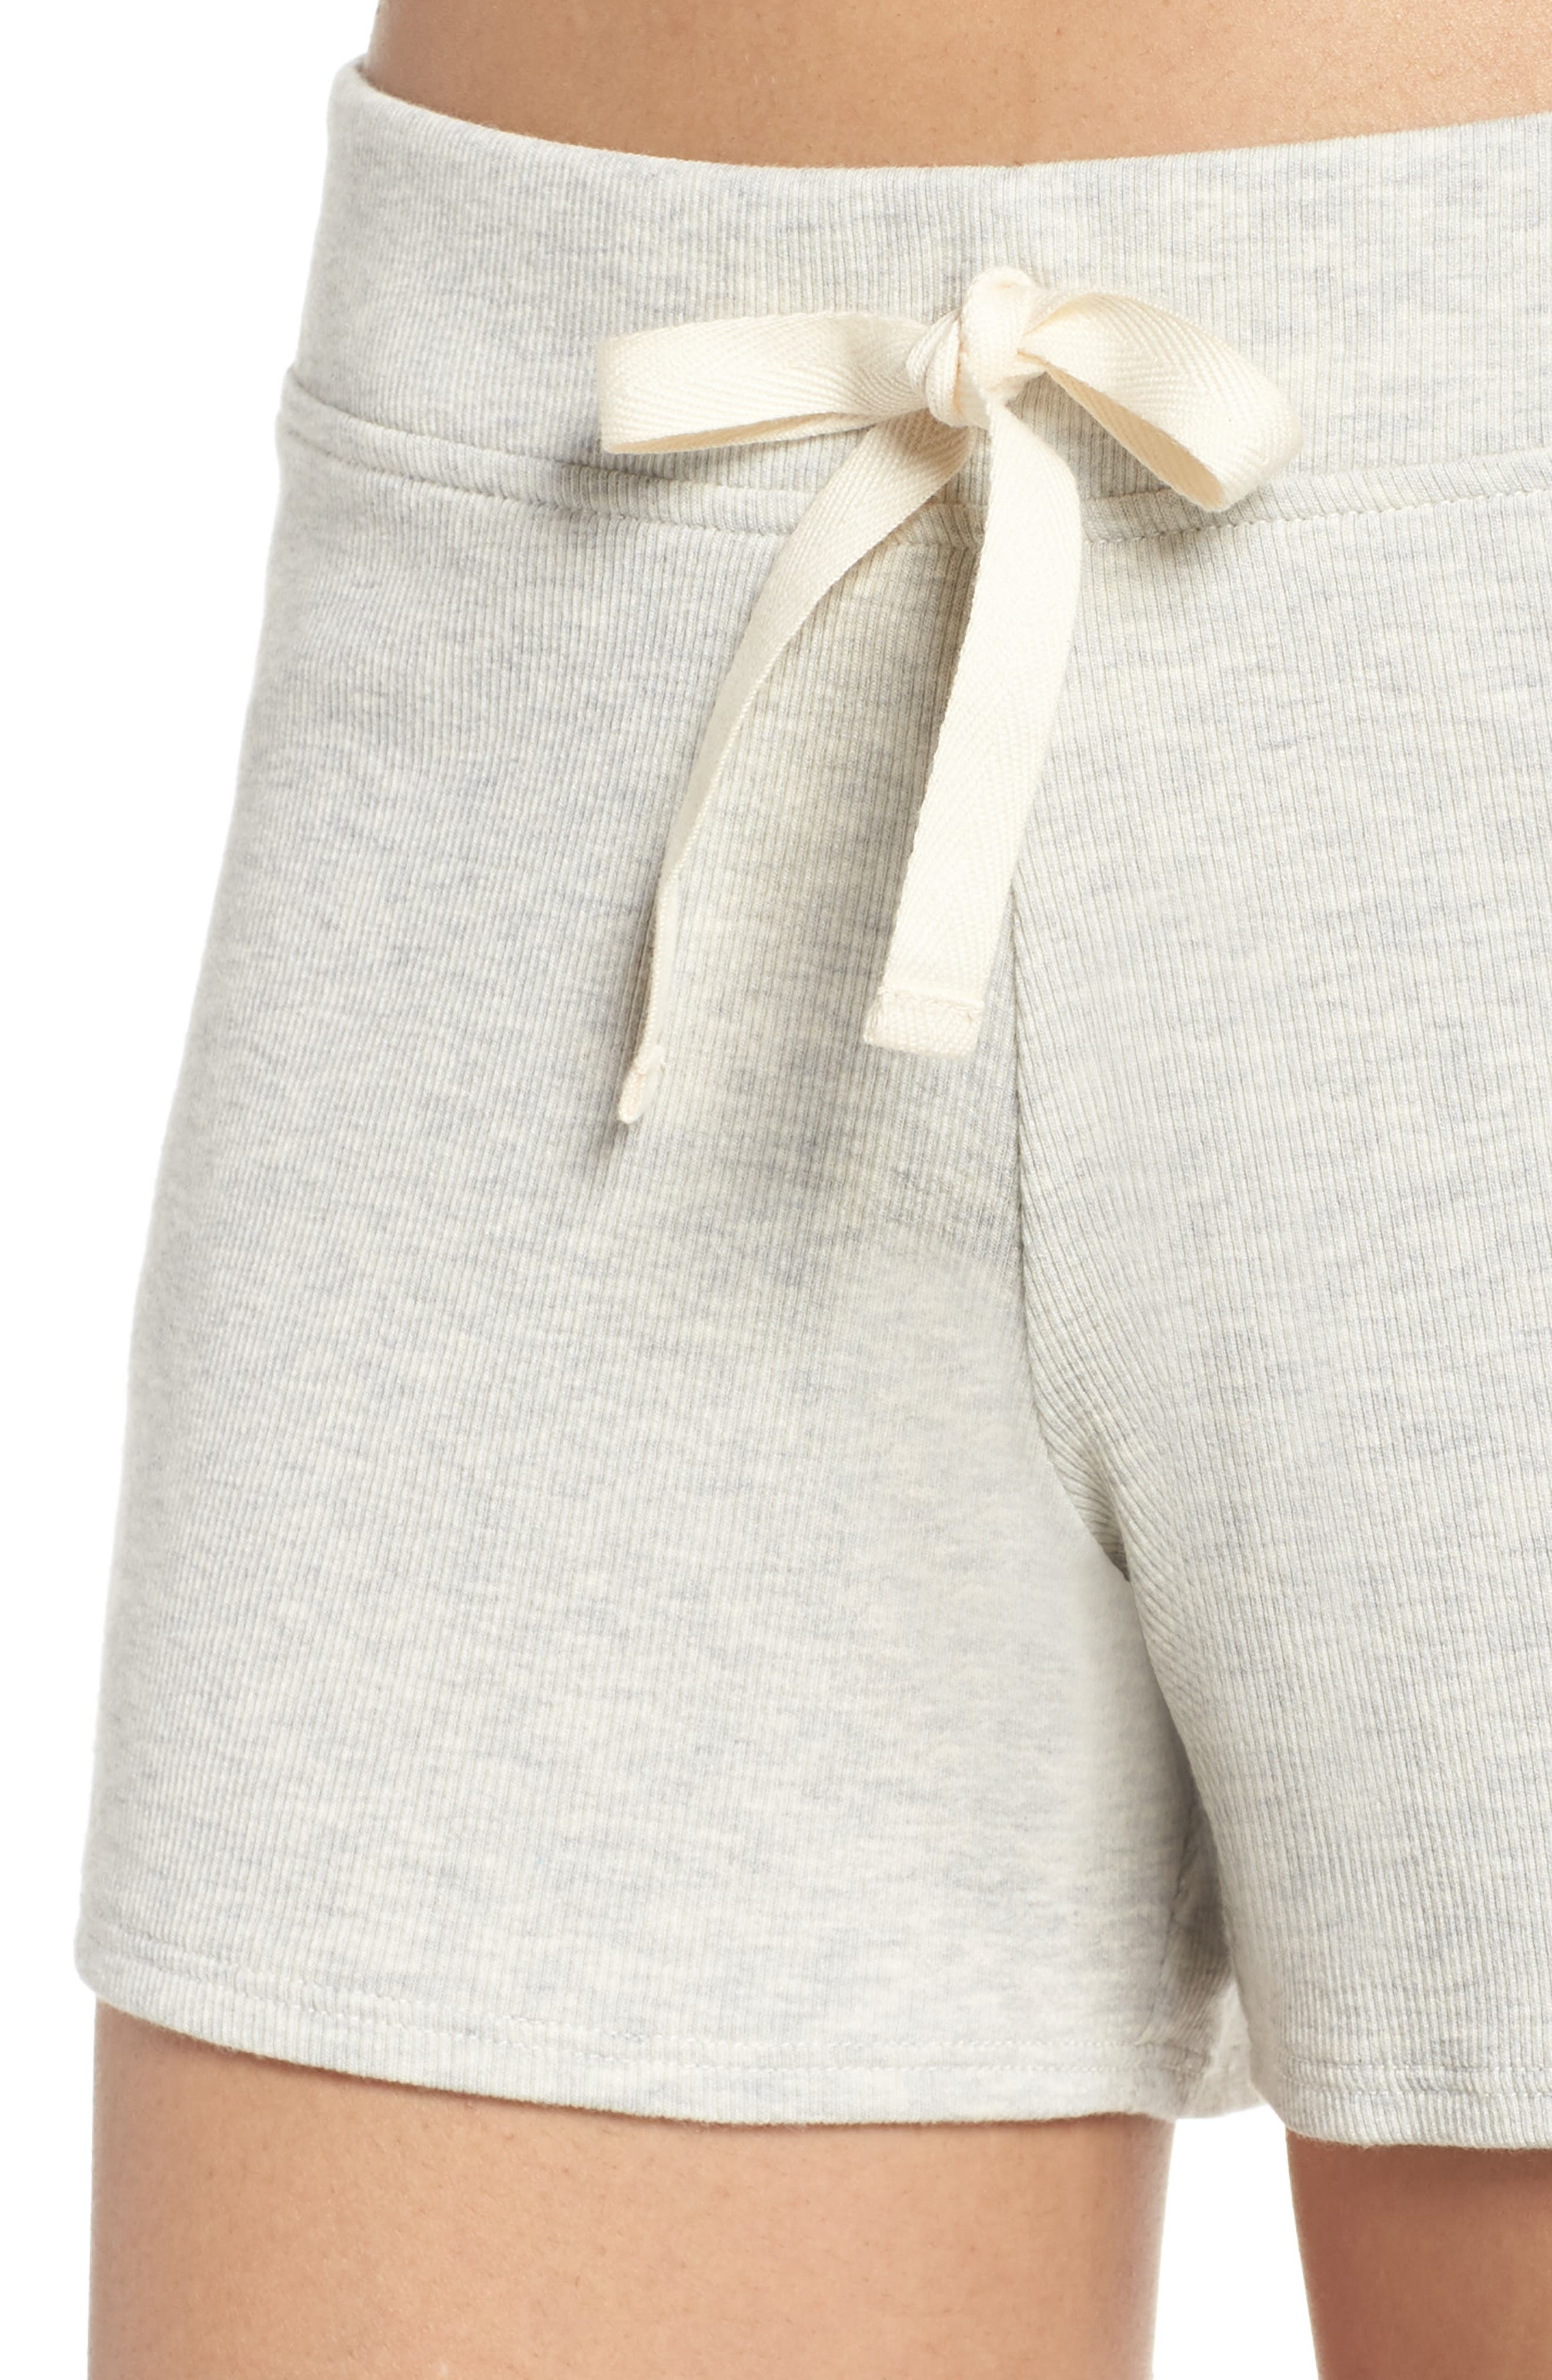 Daydream Lounge Shorts,                             Alternate thumbnail 4, color,                             Grey Heather